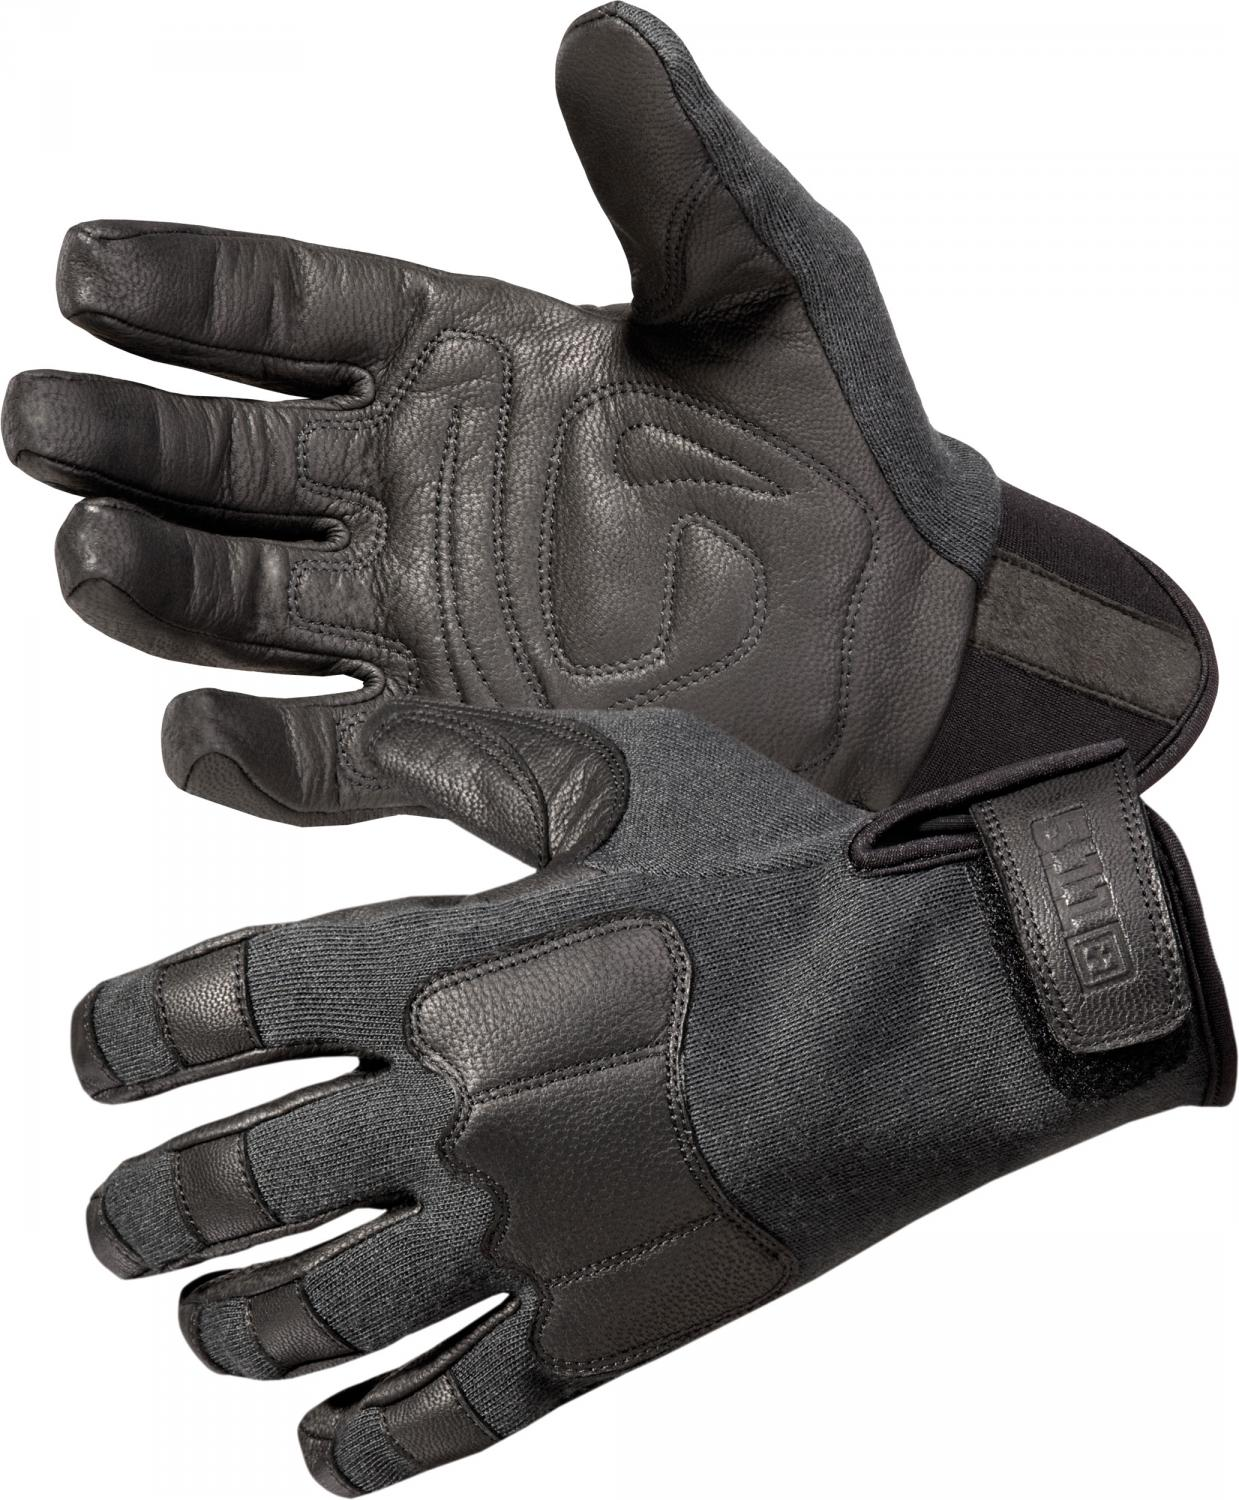 5.11 Tactical TAC AK2 Gloves, Black, Large (59341)